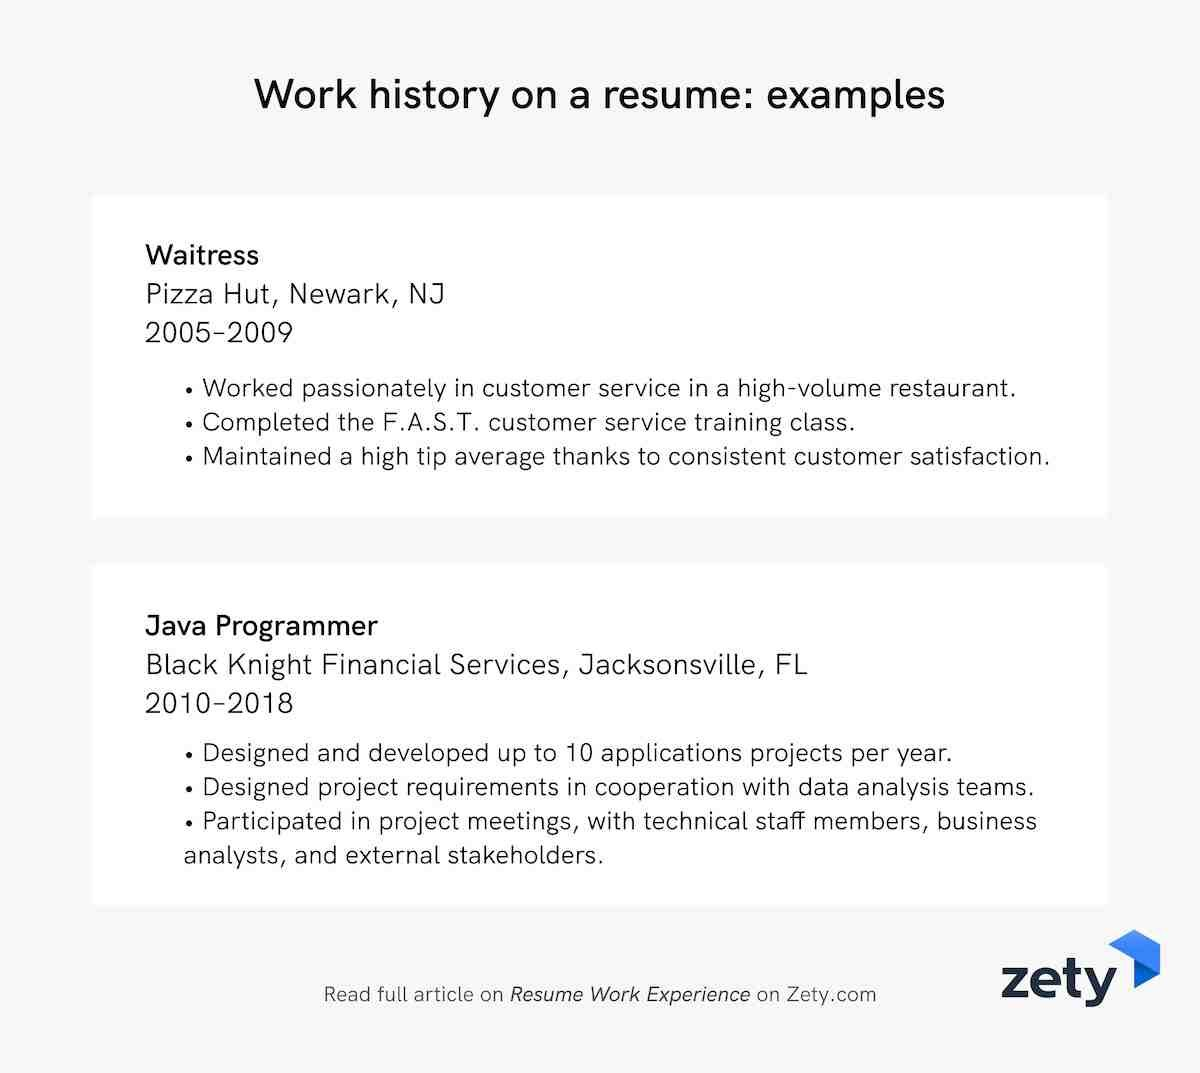 resume work experience history example job descriptions and on examples film internship Resume Work And Experience Resume